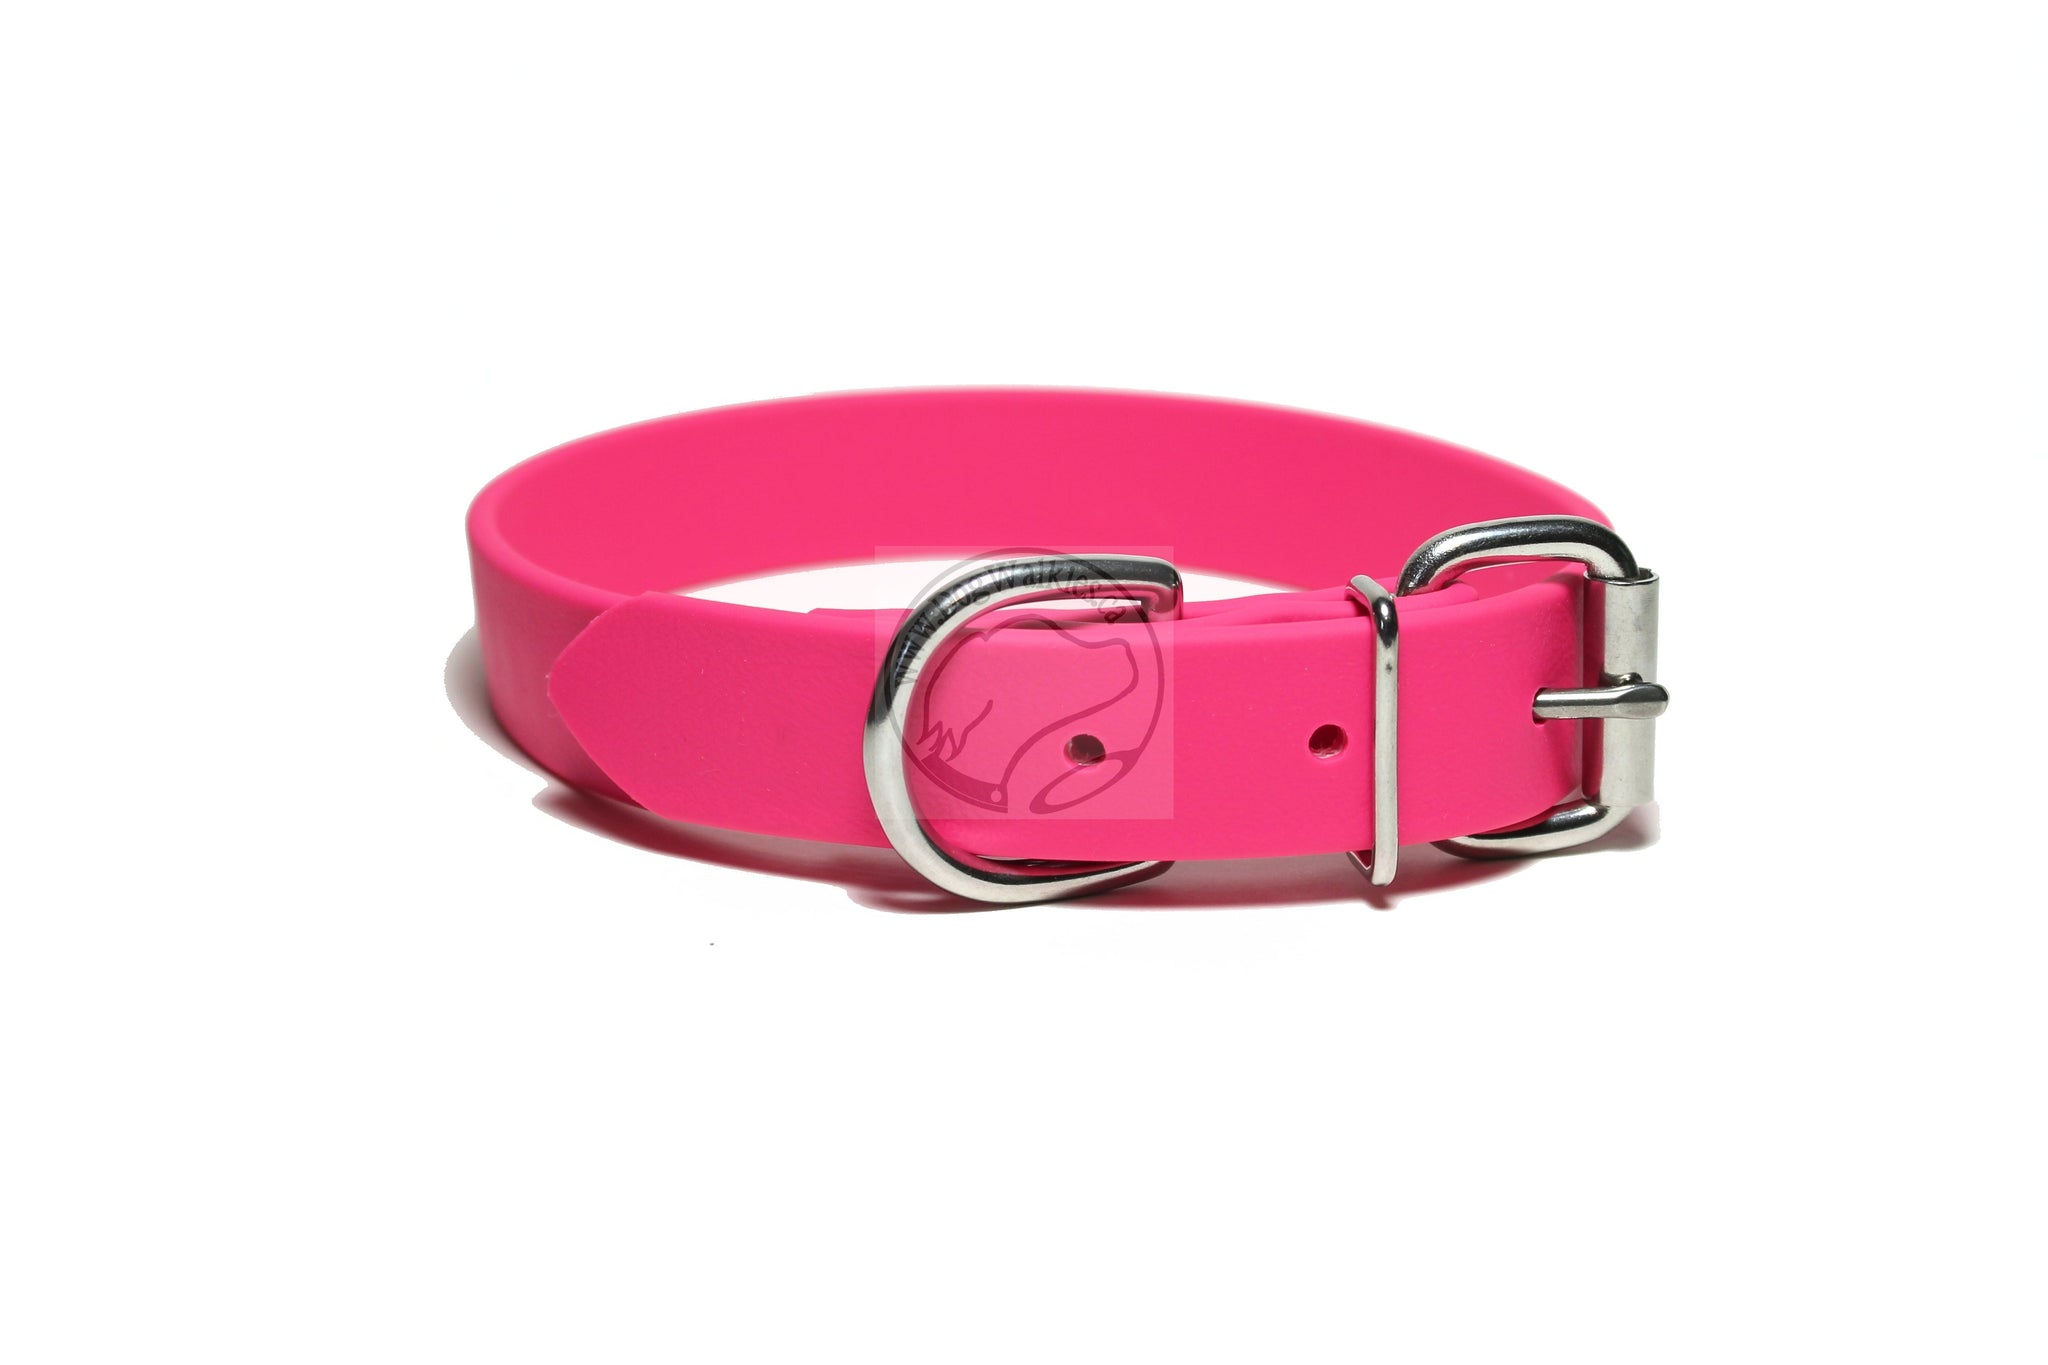 Fuchsia Pink Biothane Dog Collar - 1 inch (25mm) wide